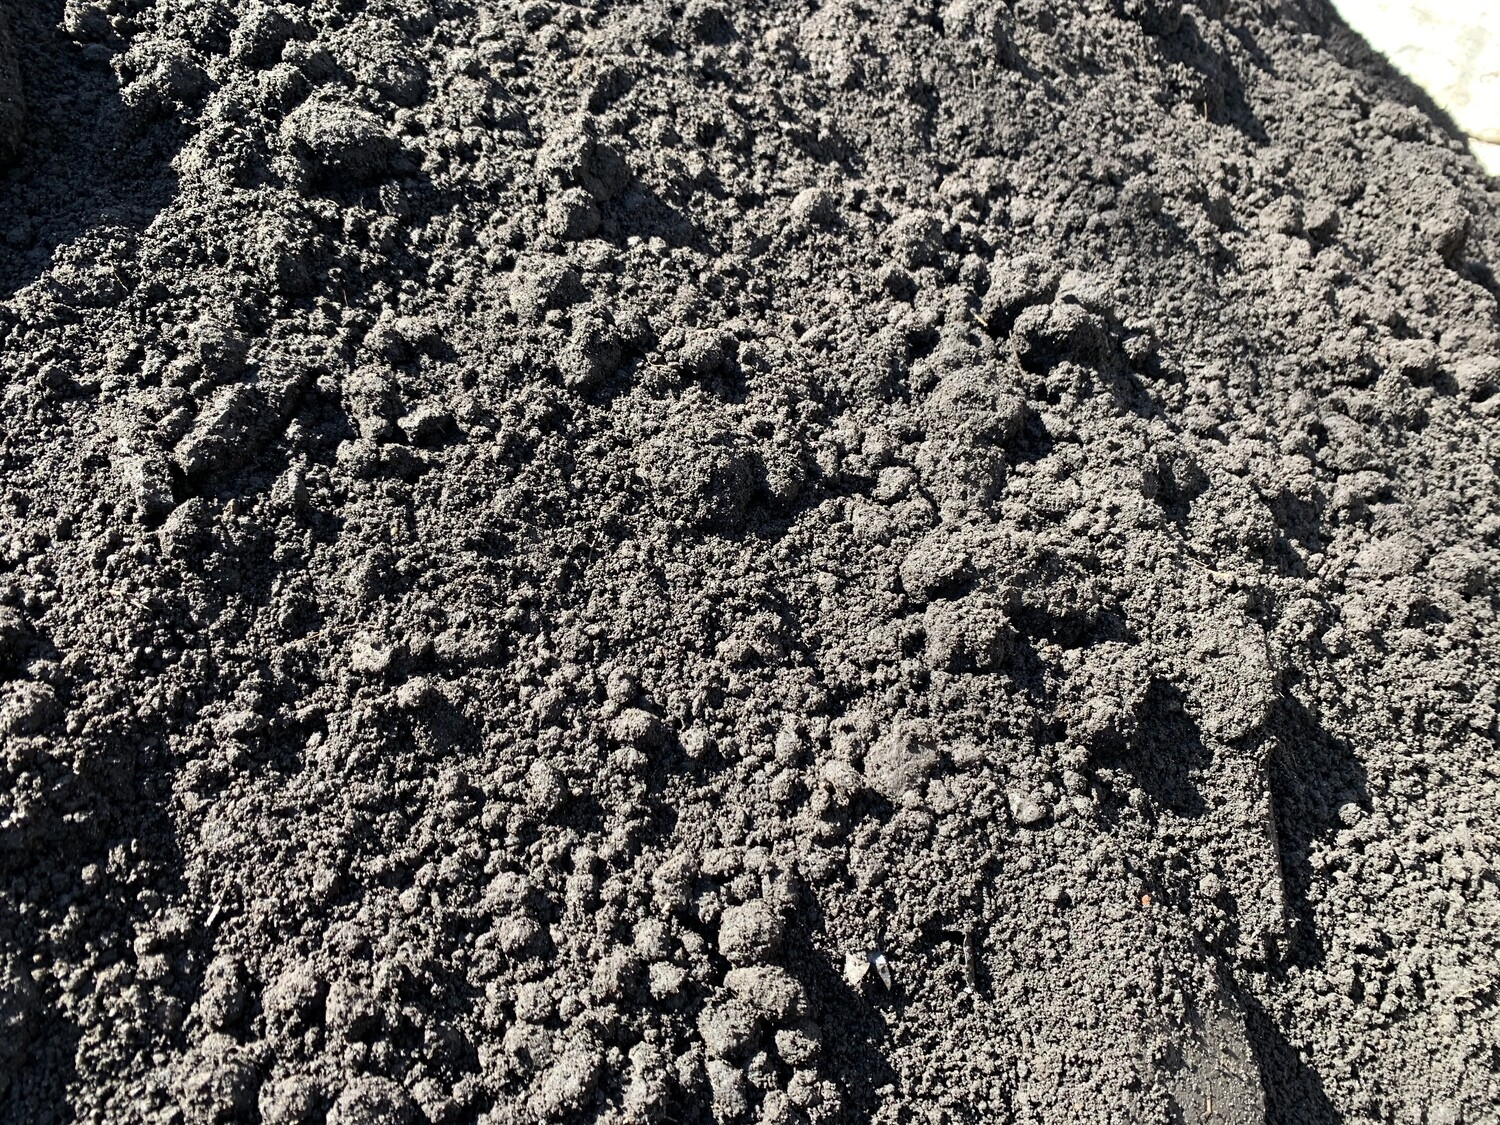 BULK - Black Dirt Pulverized